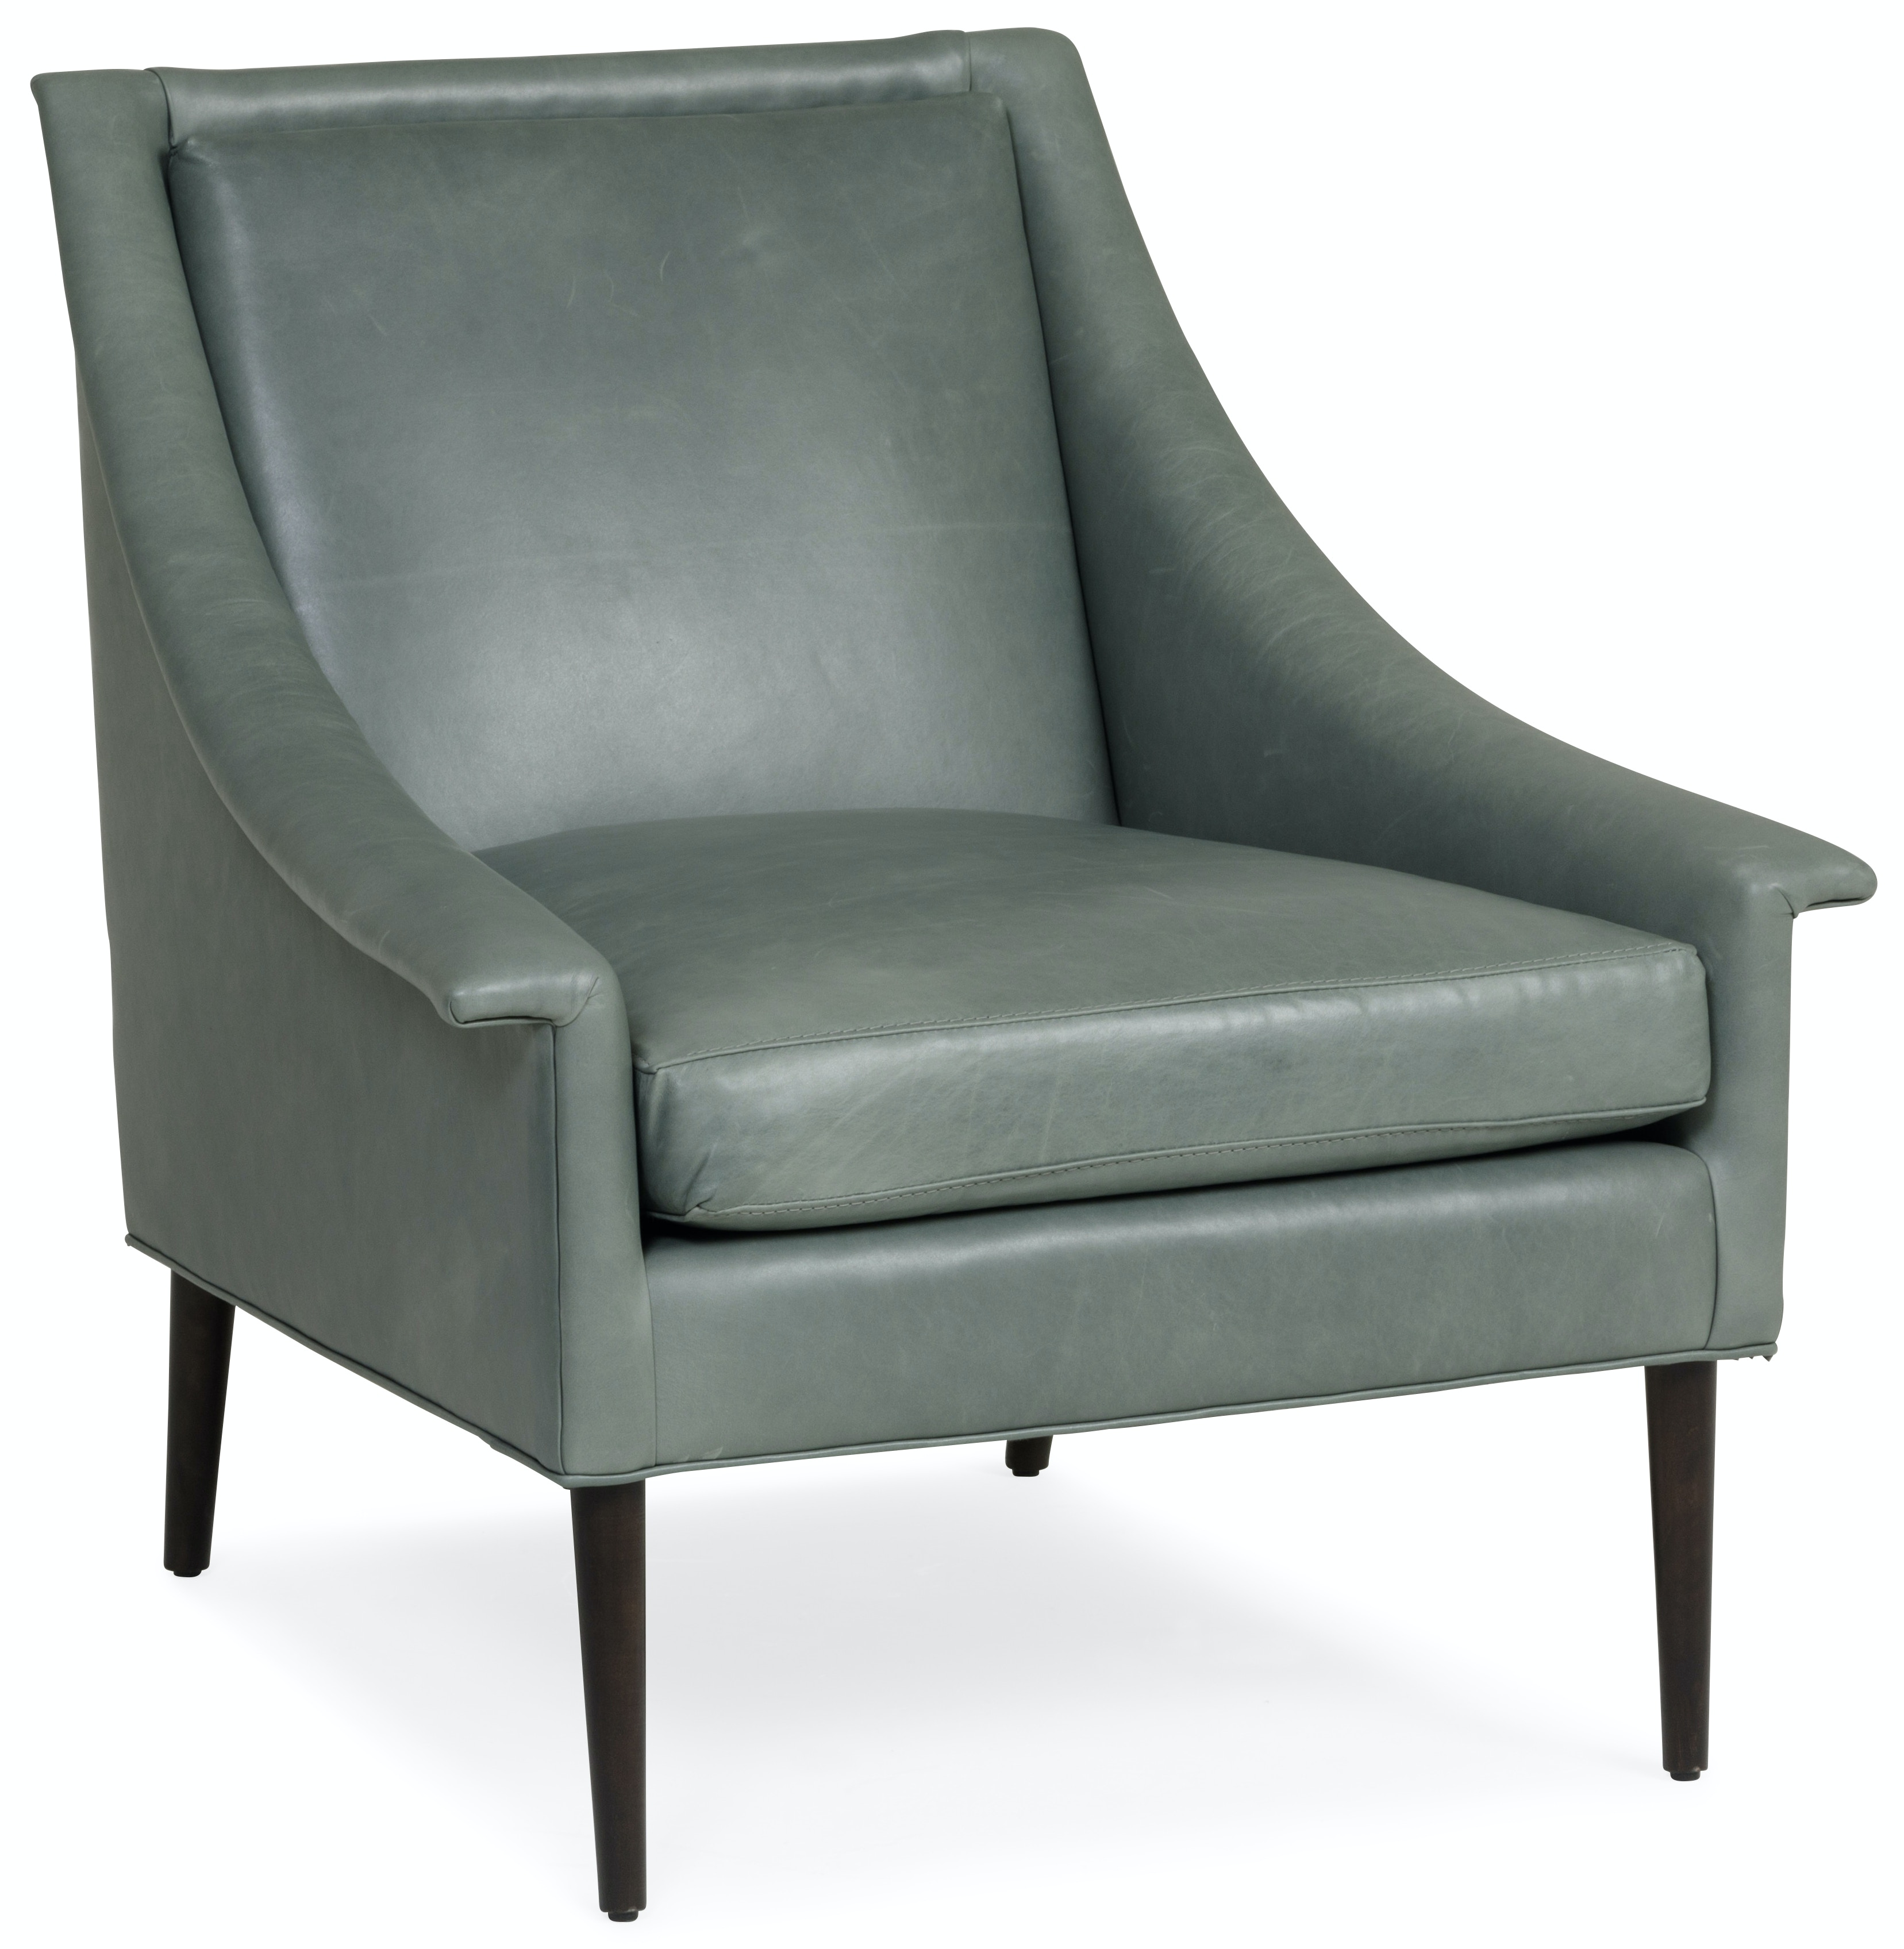 leather accent chairs hanging chair for kids living room grace st 514613